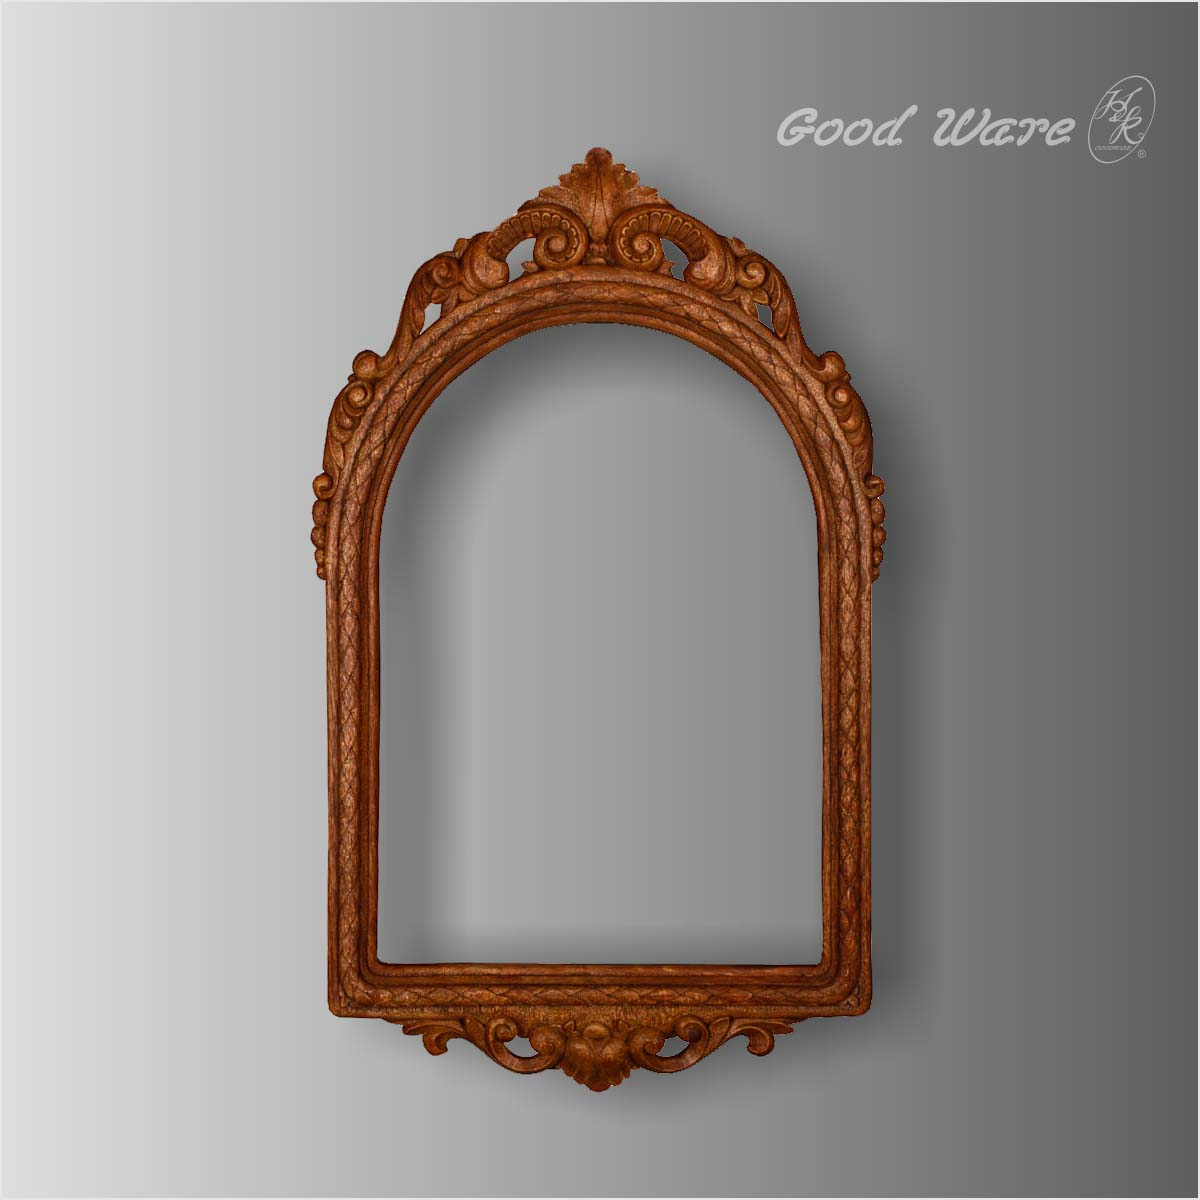 Polyurethane faux wood decorate mirror frame